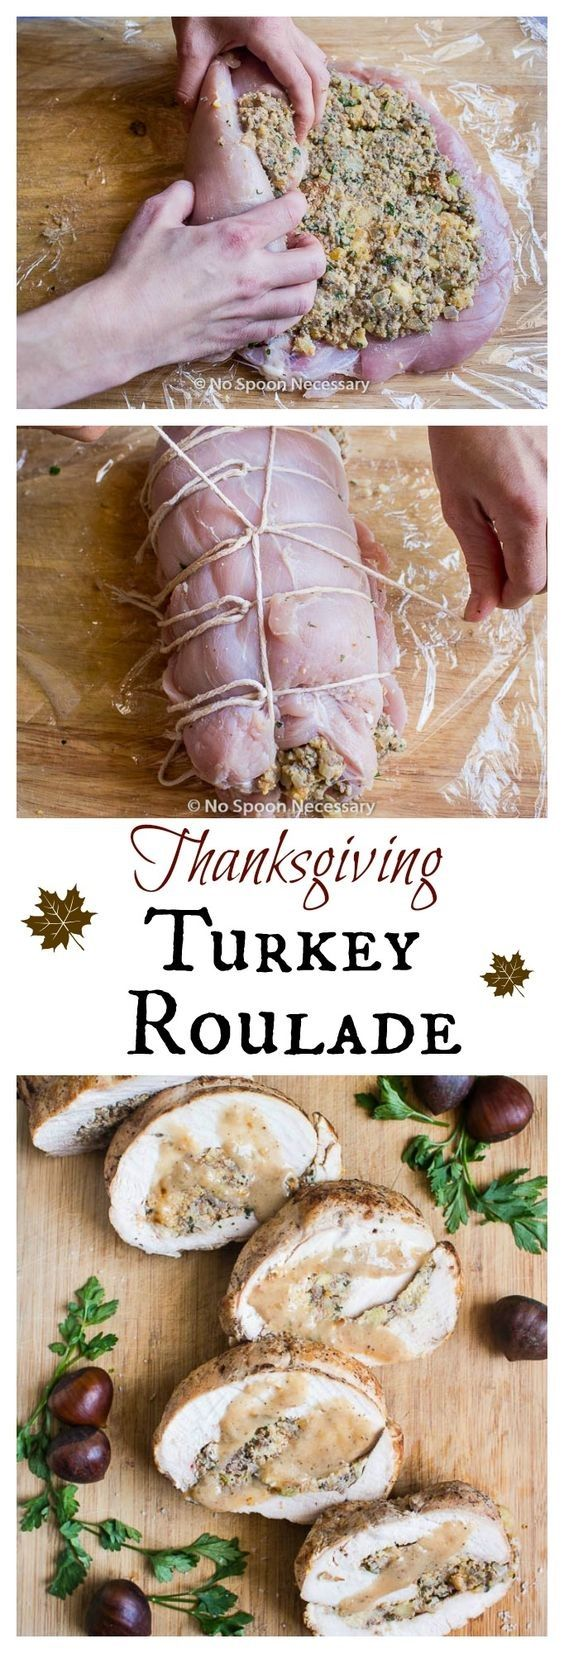 Thanksgiving Turkey Breast Roulade (With Stuffing) #thanksgivingrecipes